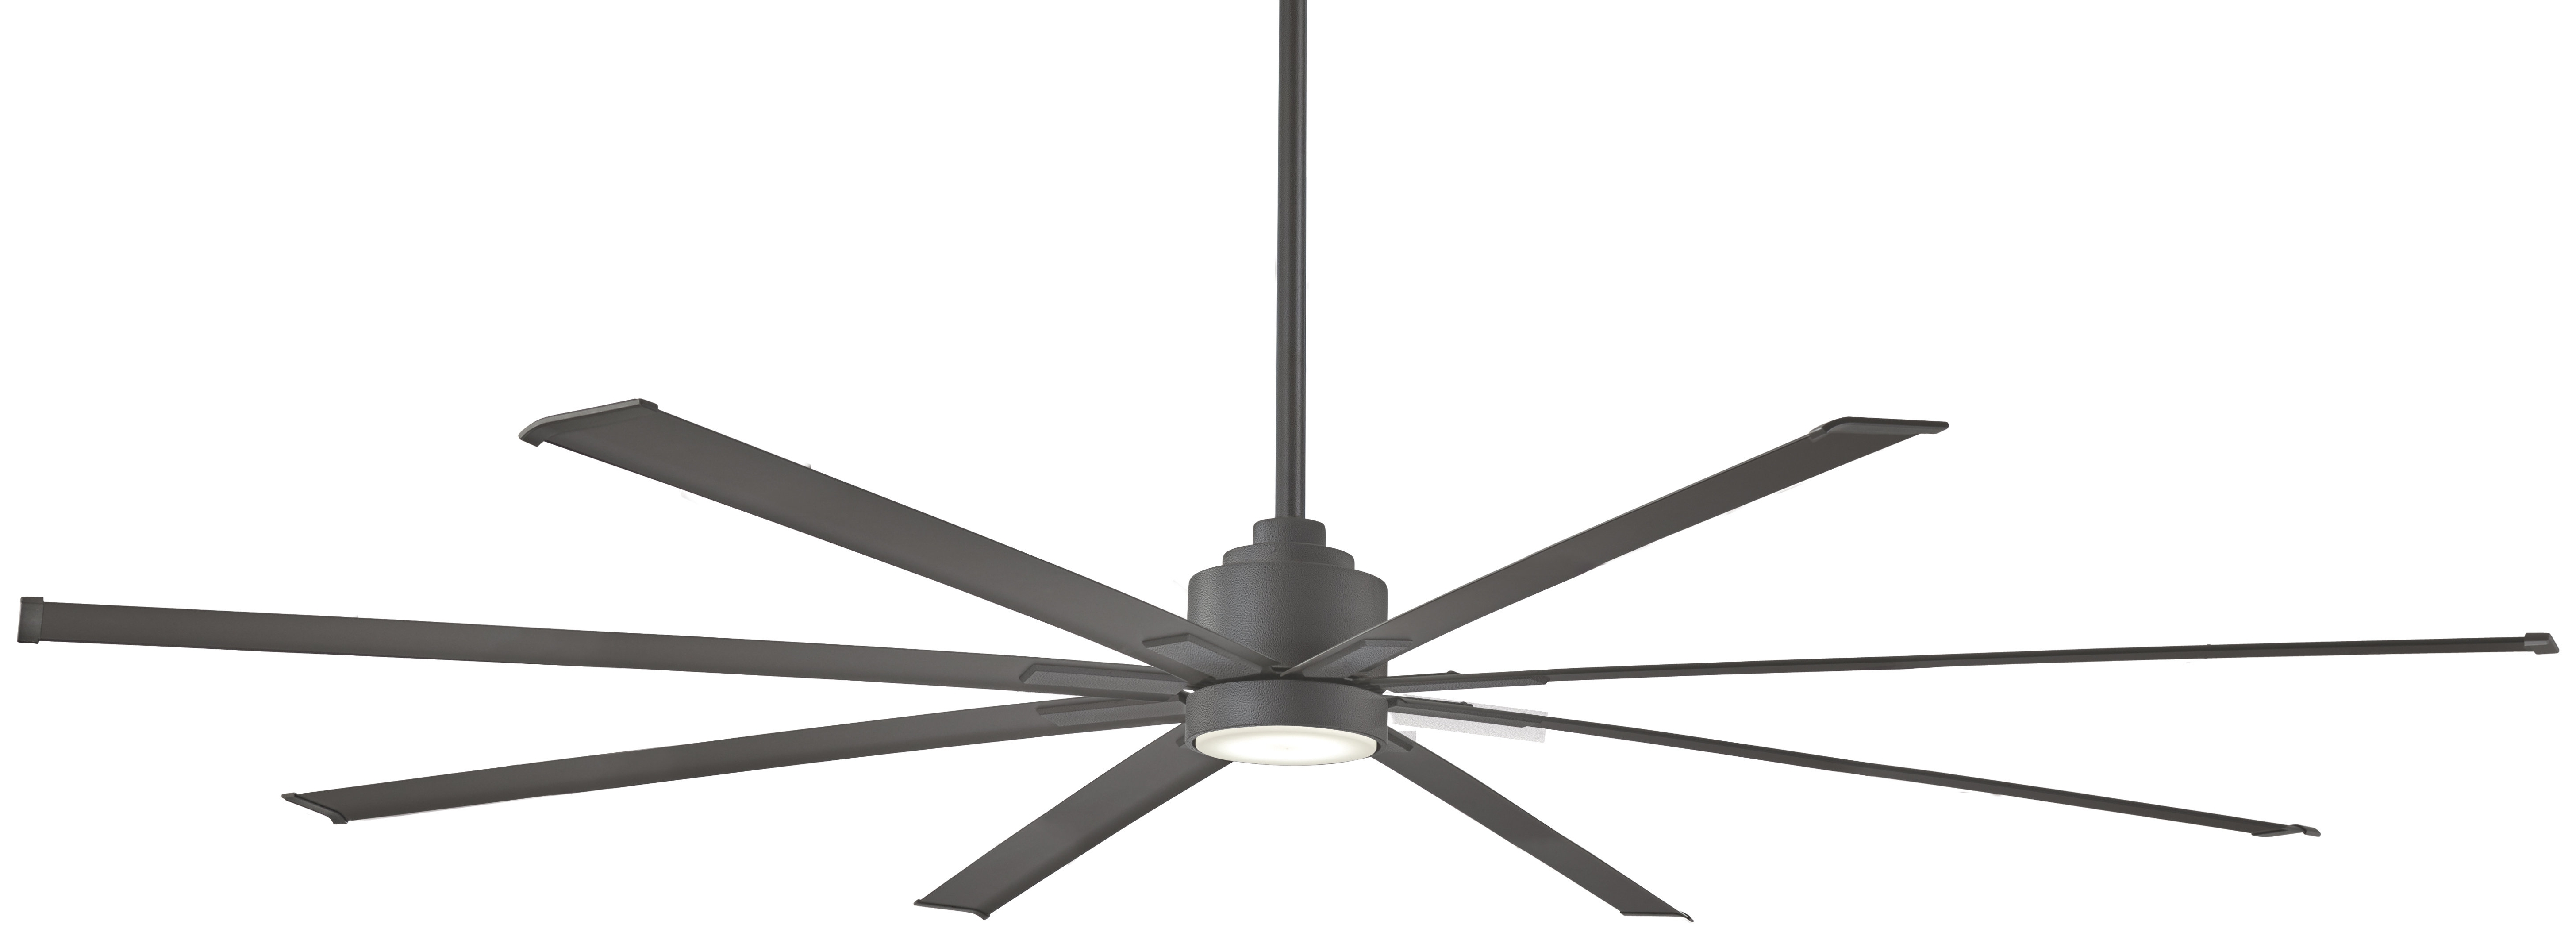 "Best And Newest Outdoor Ceiling Fans With Remote And Light With Minka Aire 84"" Xtreme 8 Outdoor Ceiling Fan With Remote & Reviews (View 3 of 20)"